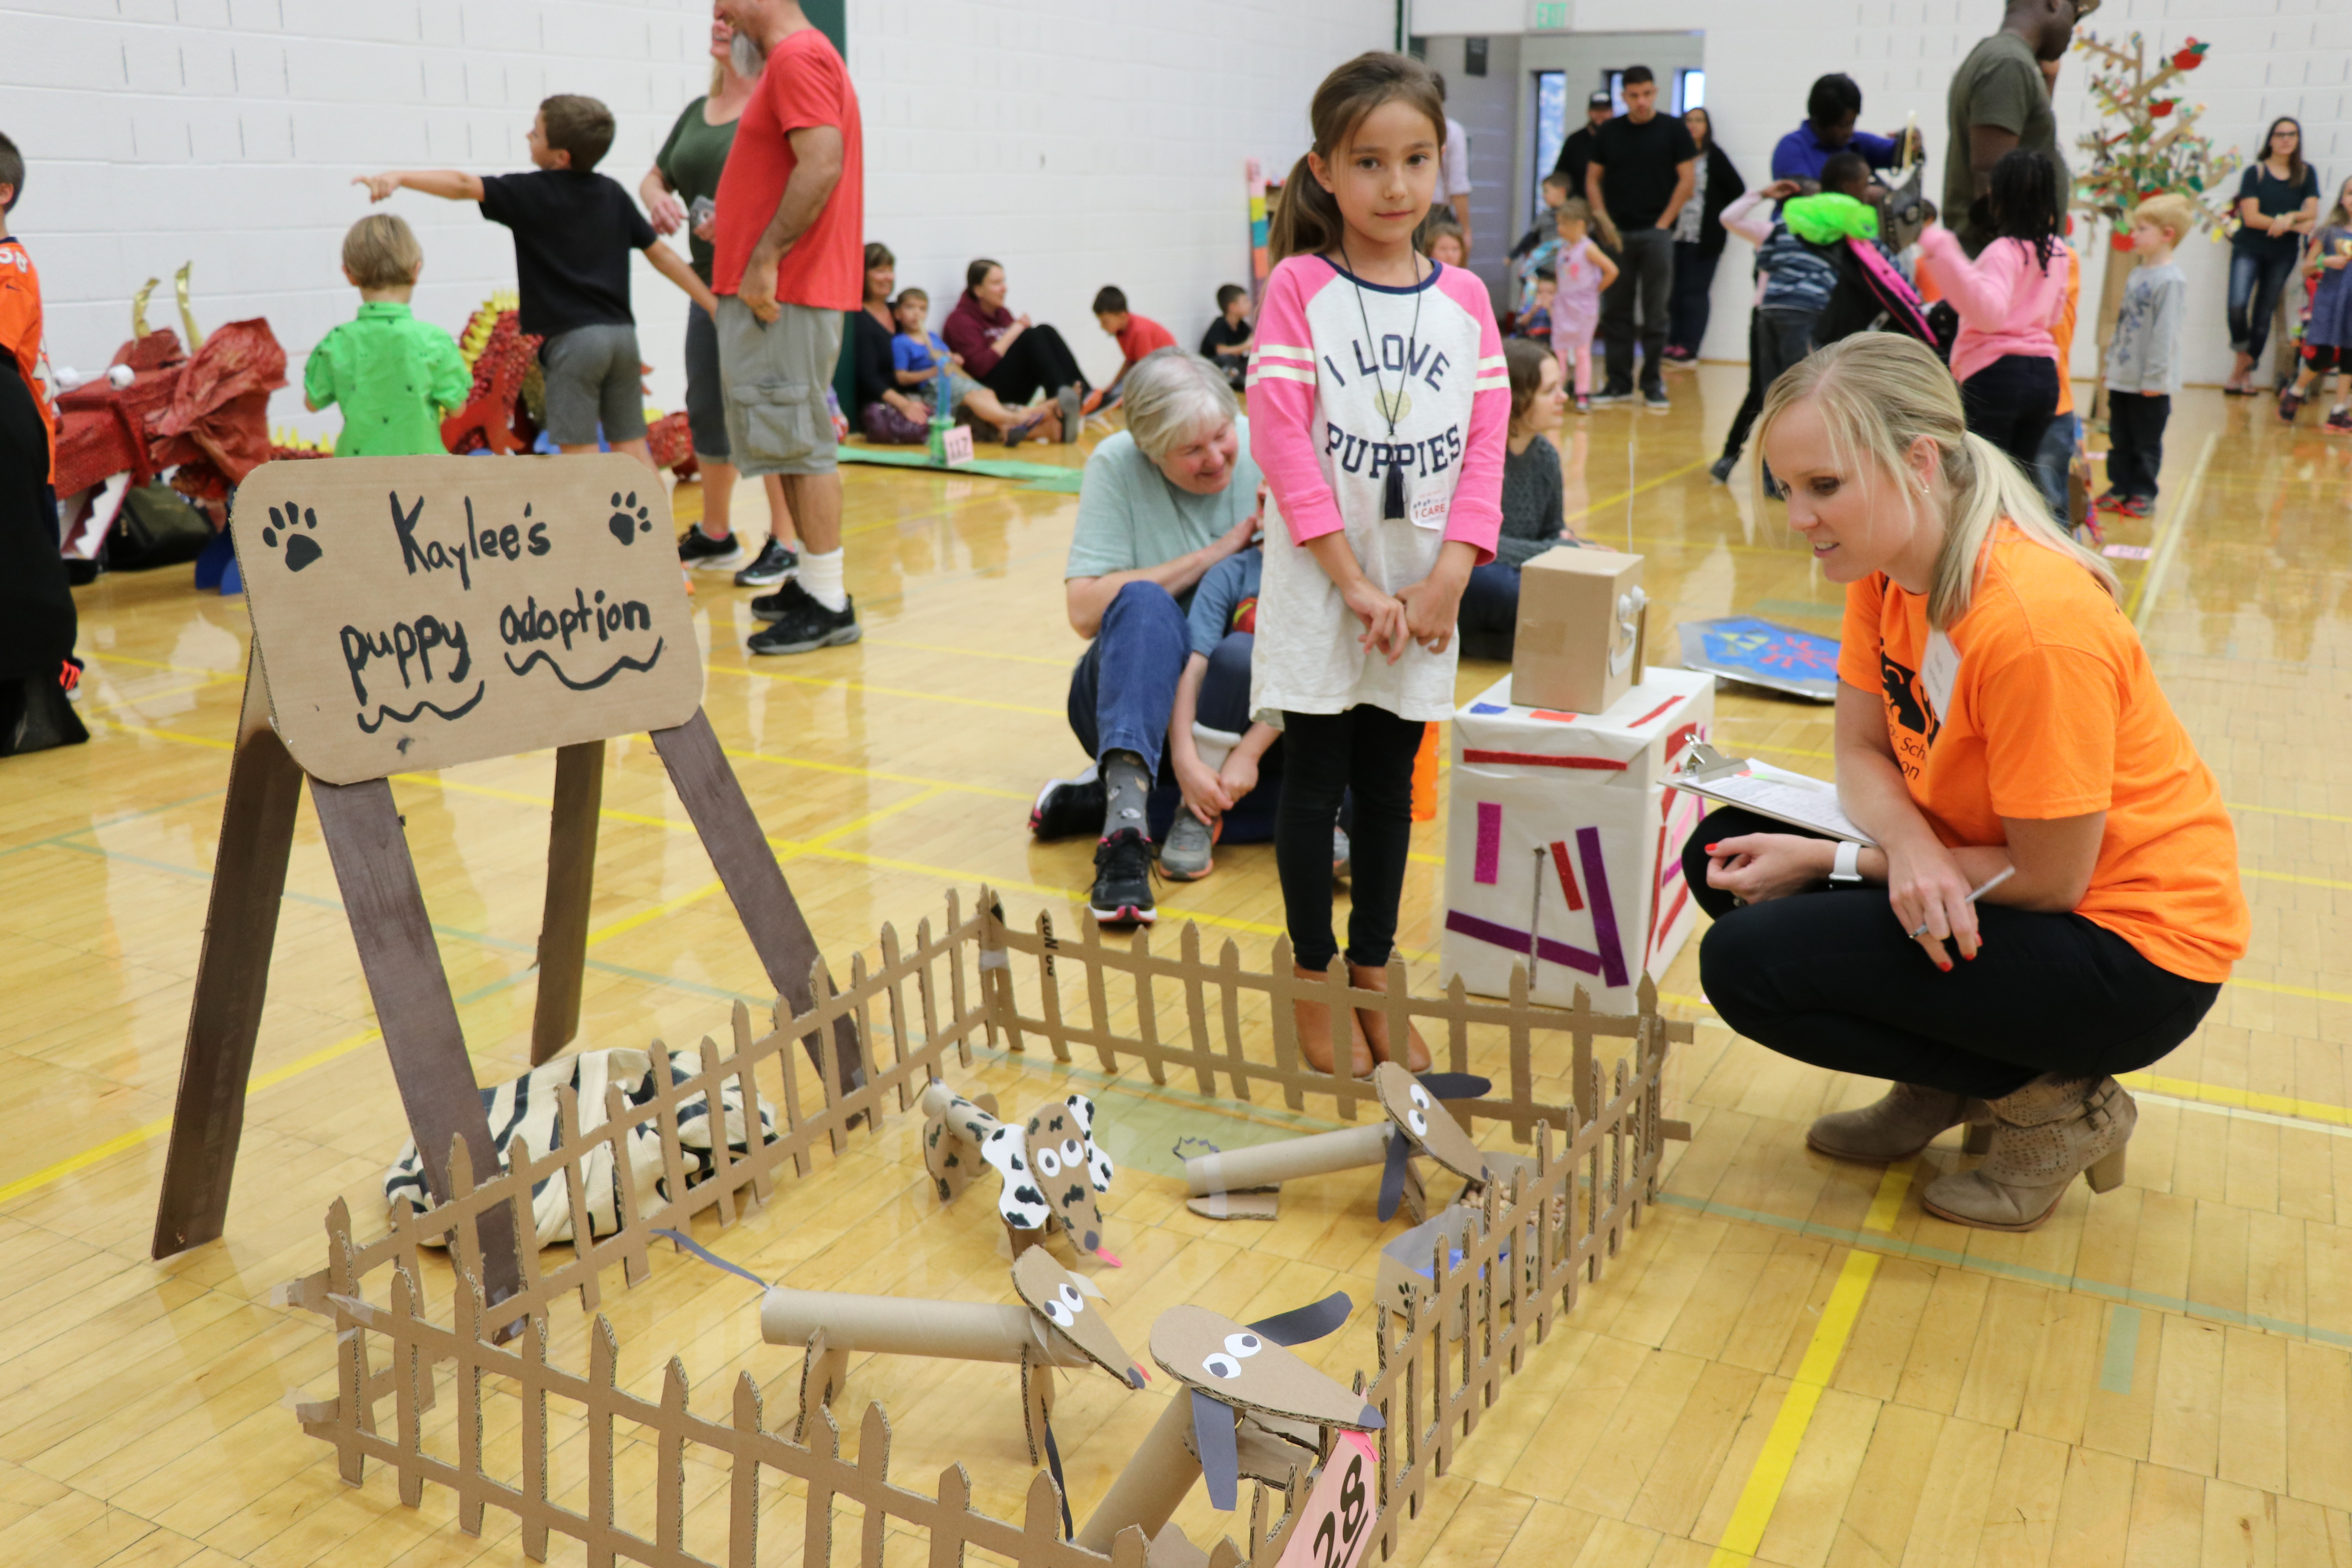 Open call for volunteer judges to participate in 6th Annual Cardboard Challenge